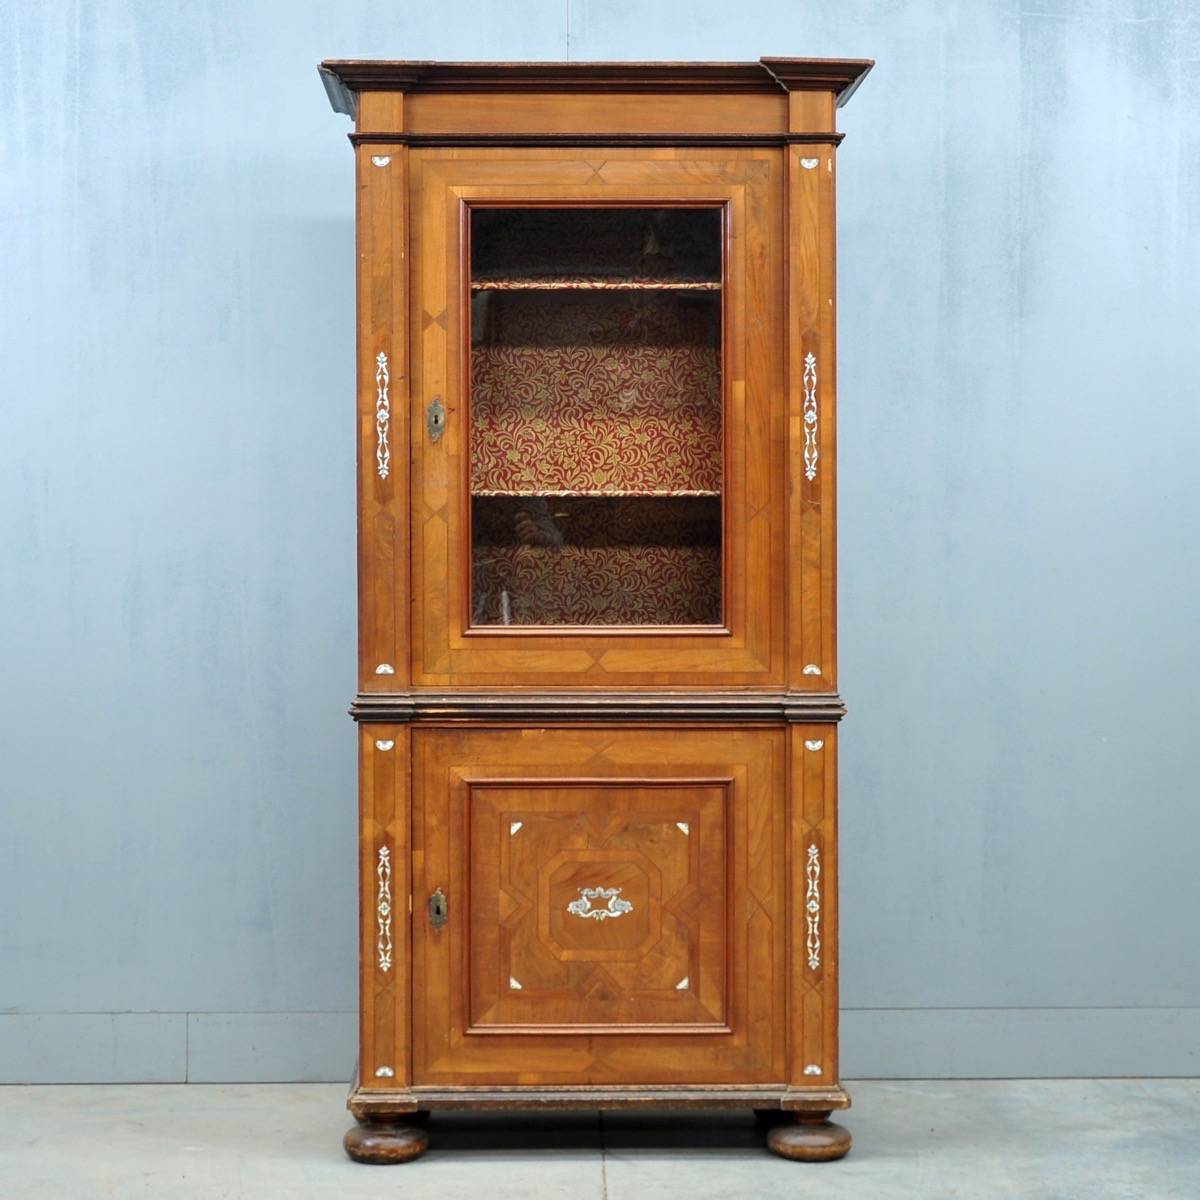 cupboards farmhouse shop cupboard pennsylvania antique jelly pantry cabinet